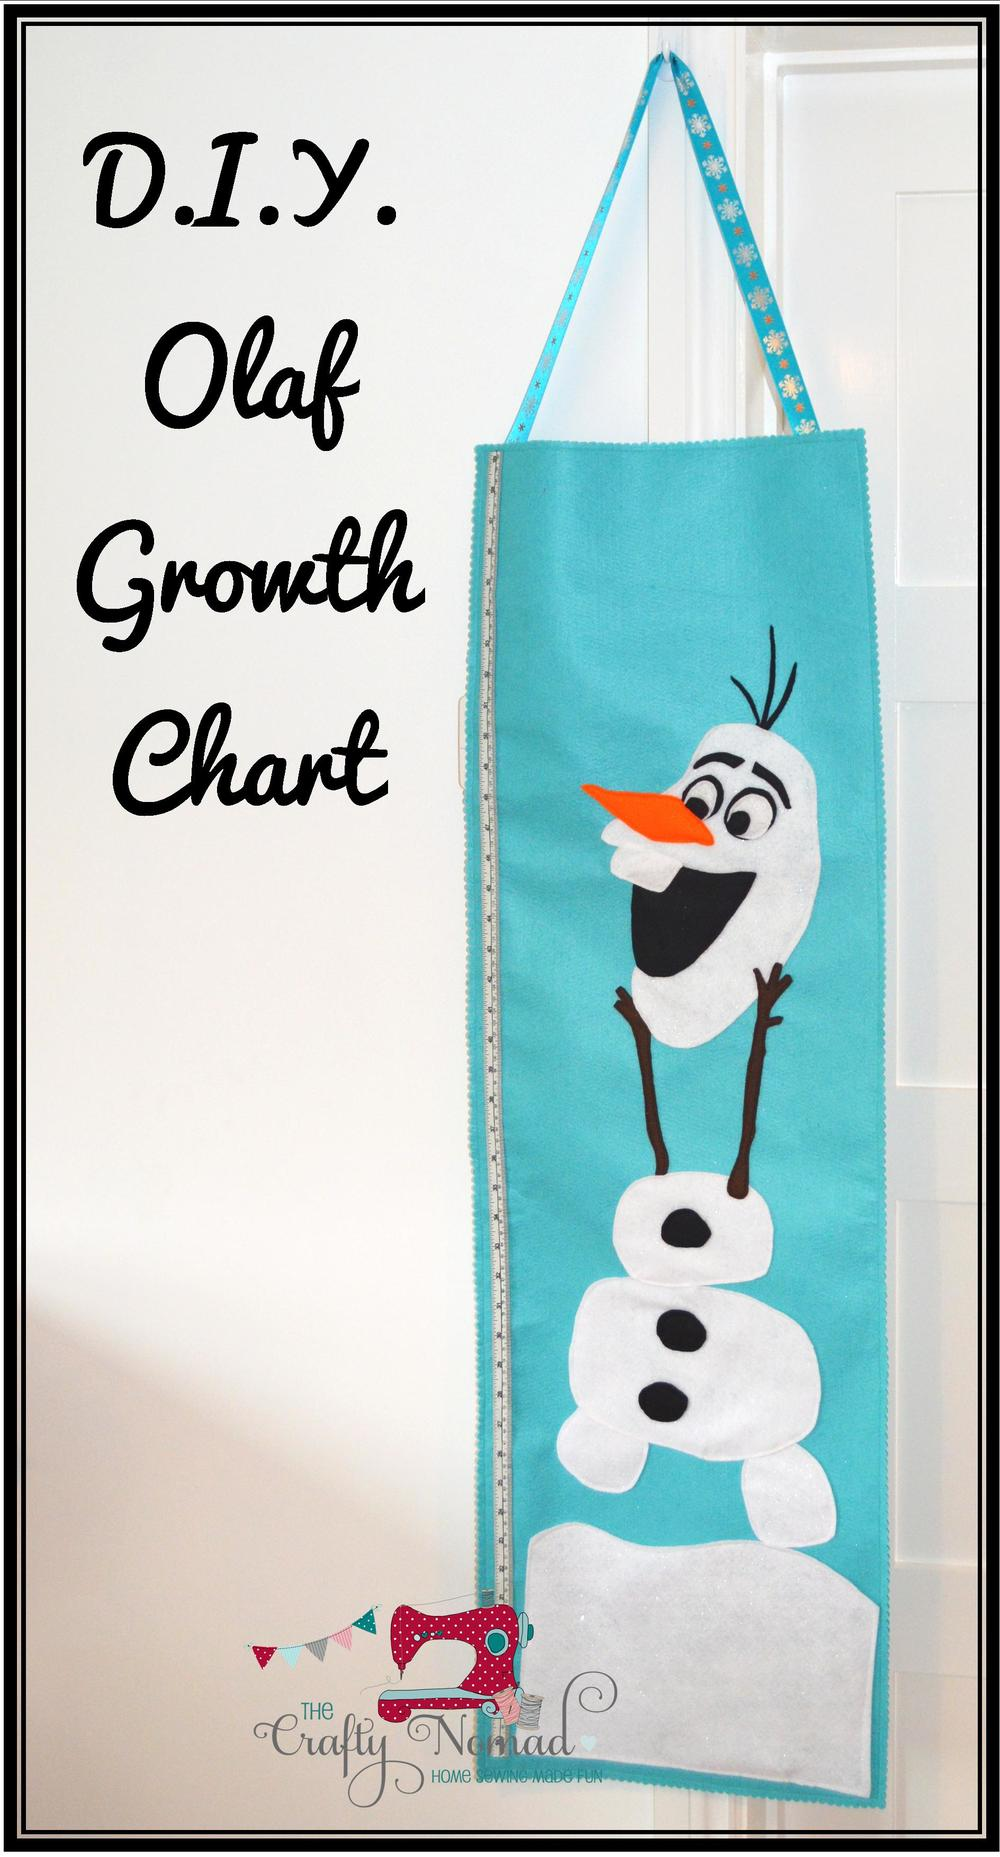 Olaf Growth Chart